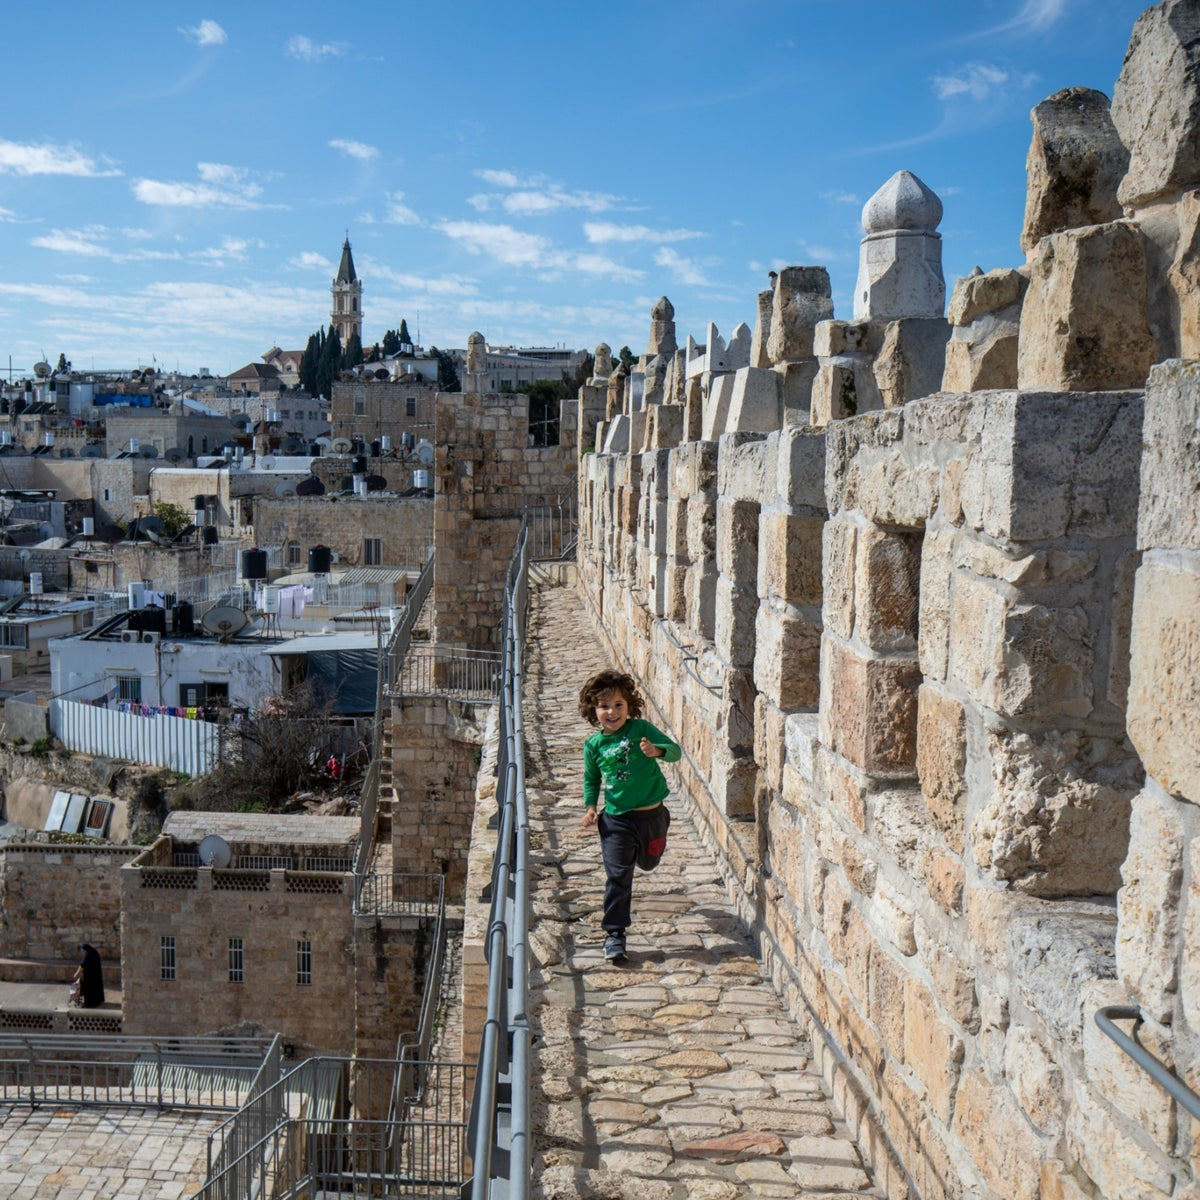 A child on the Ramparts Walk in Jerusalem's Old City, February 2020.